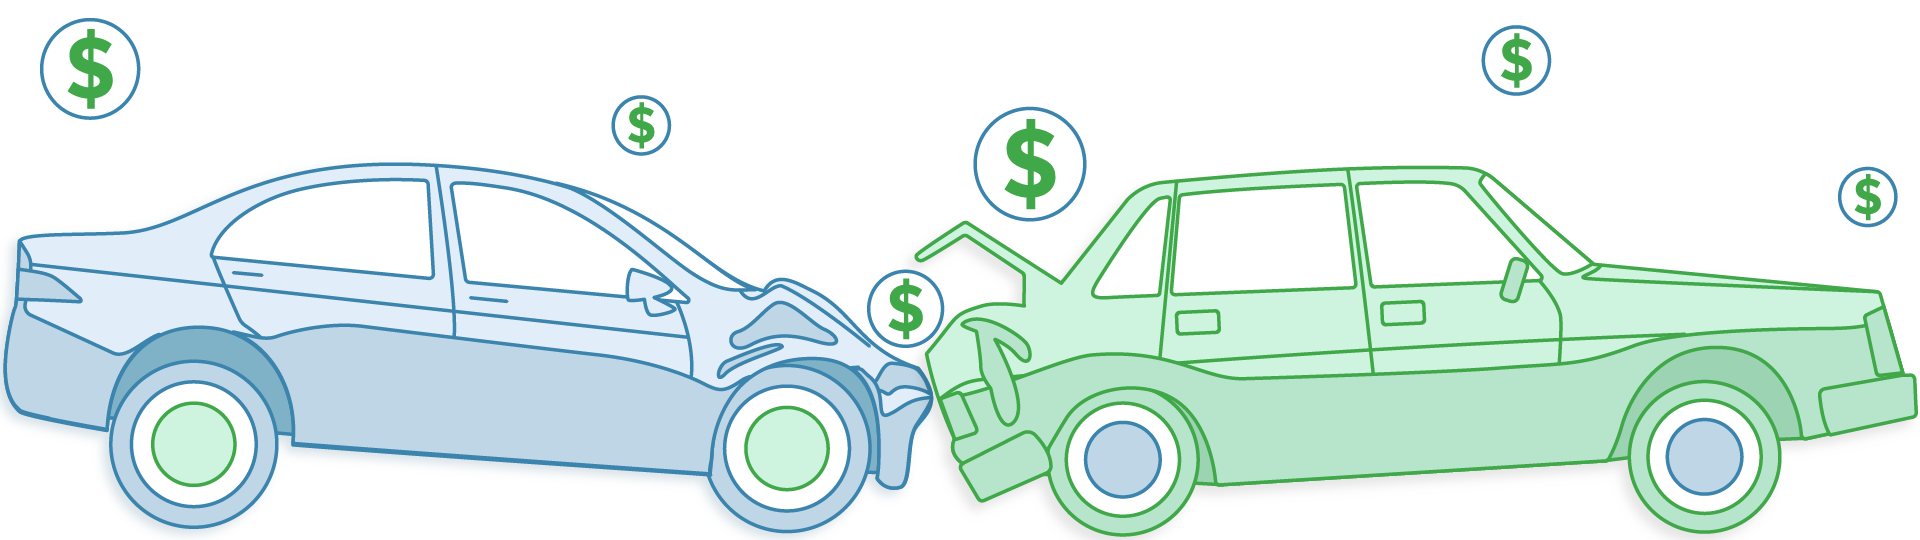 Illustration of a car collision and dollar signs around it